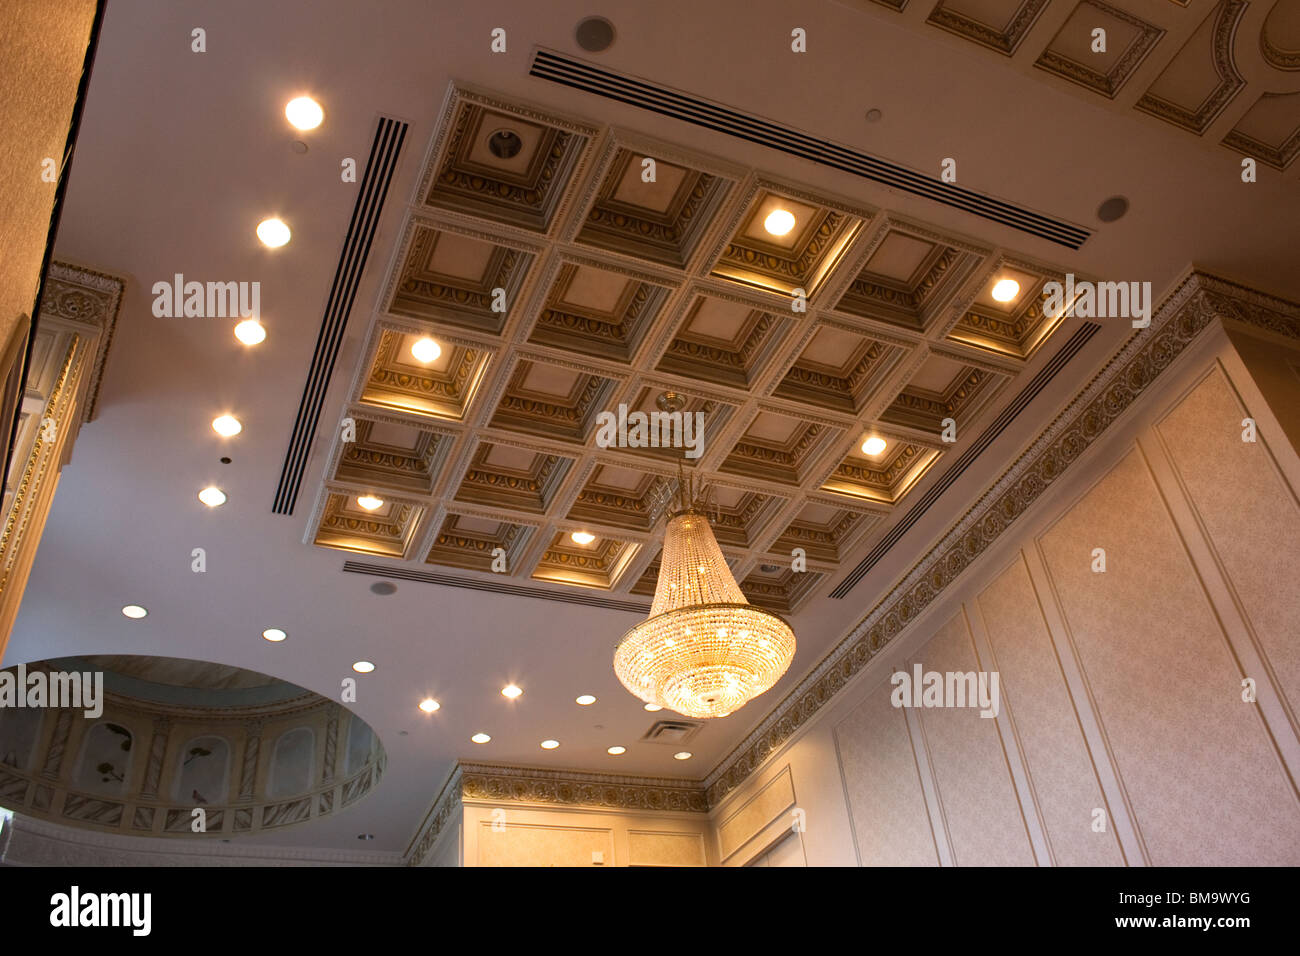 Ceiling Banquet Hall Lighting Fixtures Stock Photo: 29721428 ...